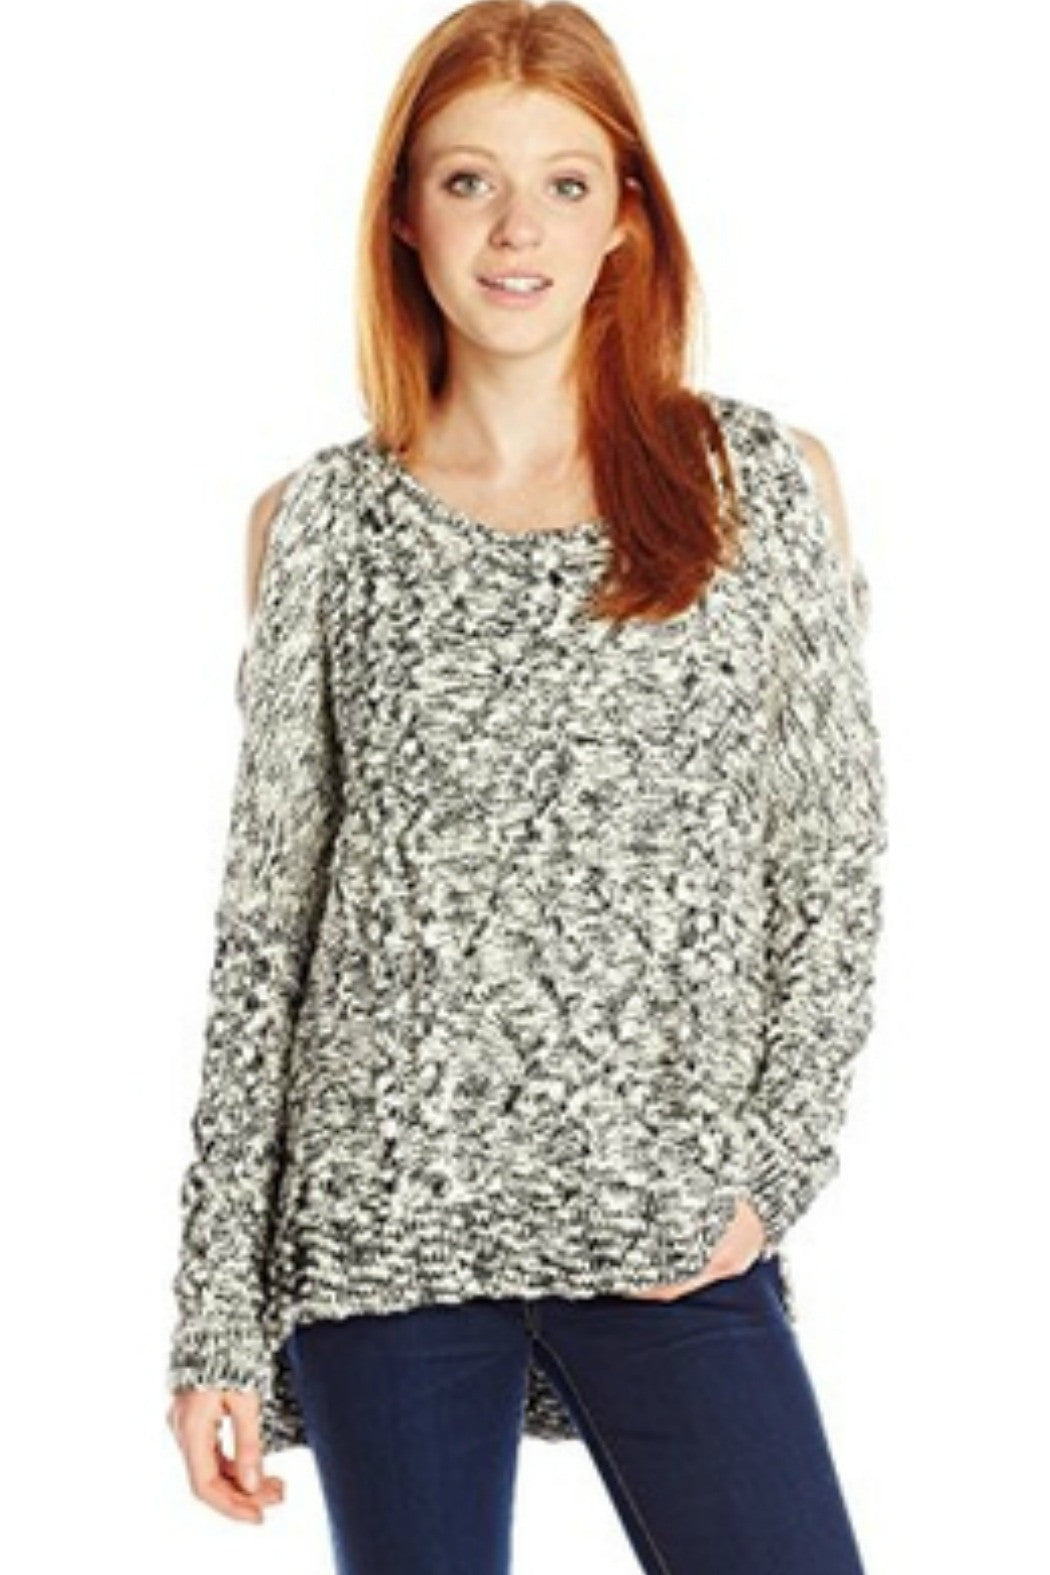 Yarn Holey Sweater - R+D Hipster Emporium | Womens & Mens Clothing